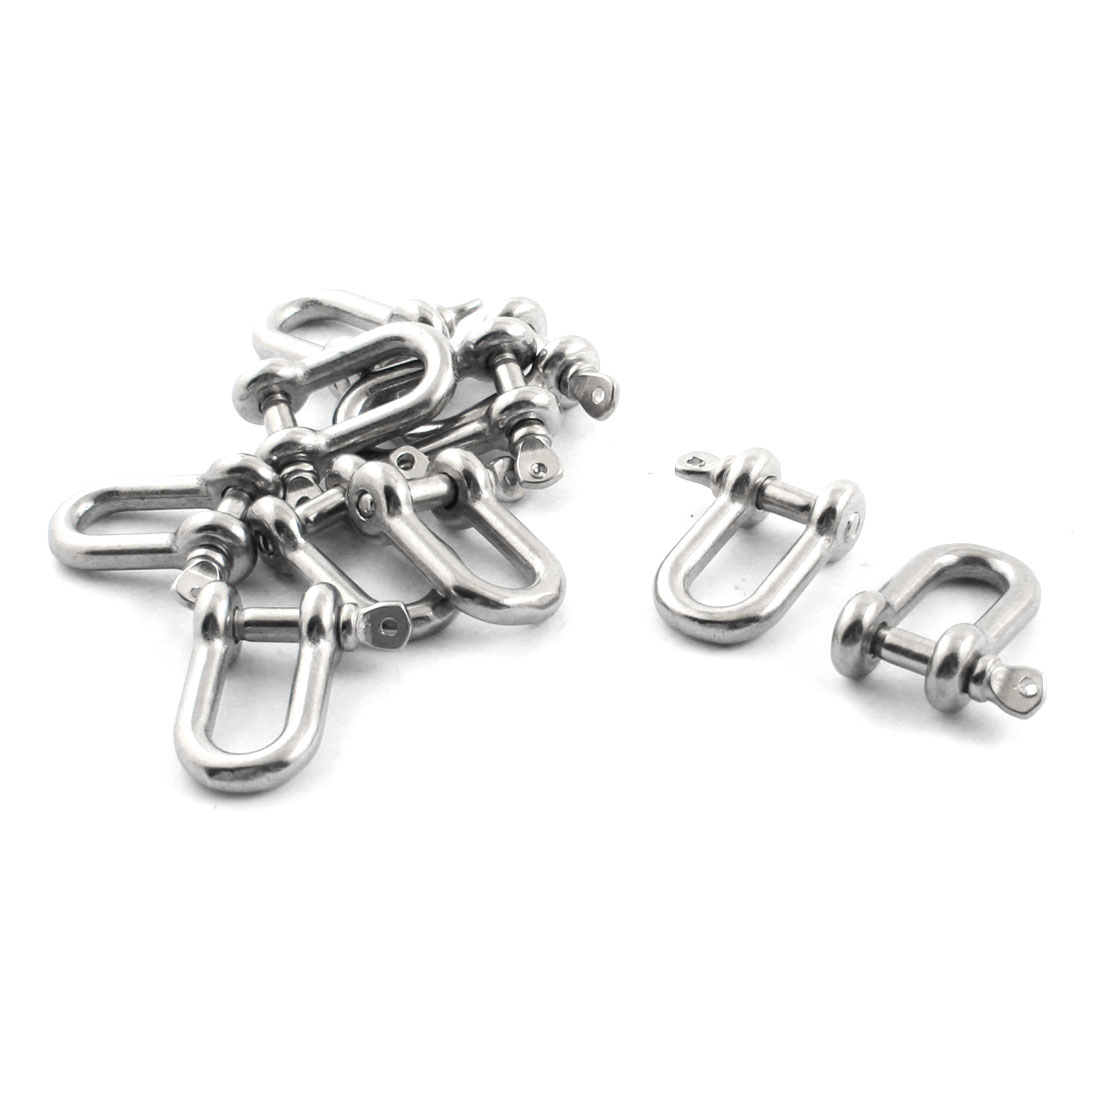 10PCS Silver Tone Stainless Steel M4 Thread Wire Rope Fastener D Shackles